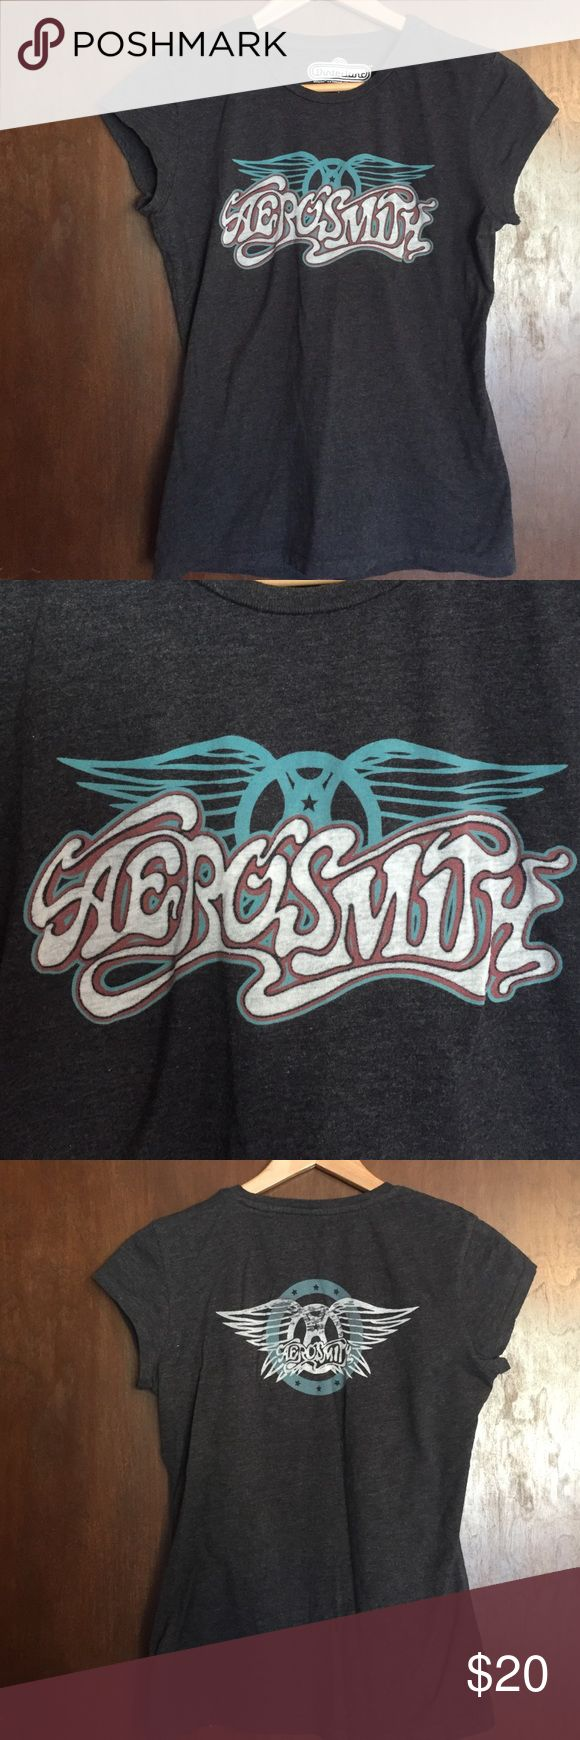 Aerosmith Women's T-Shirt Aerosmith junior's fitted t-shirt, charcoal gray cap sleeve, logo on front and back, sheer fabric, cotton blend, junior's size XL extra large (runs very small) , EUC excellent used condition Winterland Tops Tees - Short Sleeve